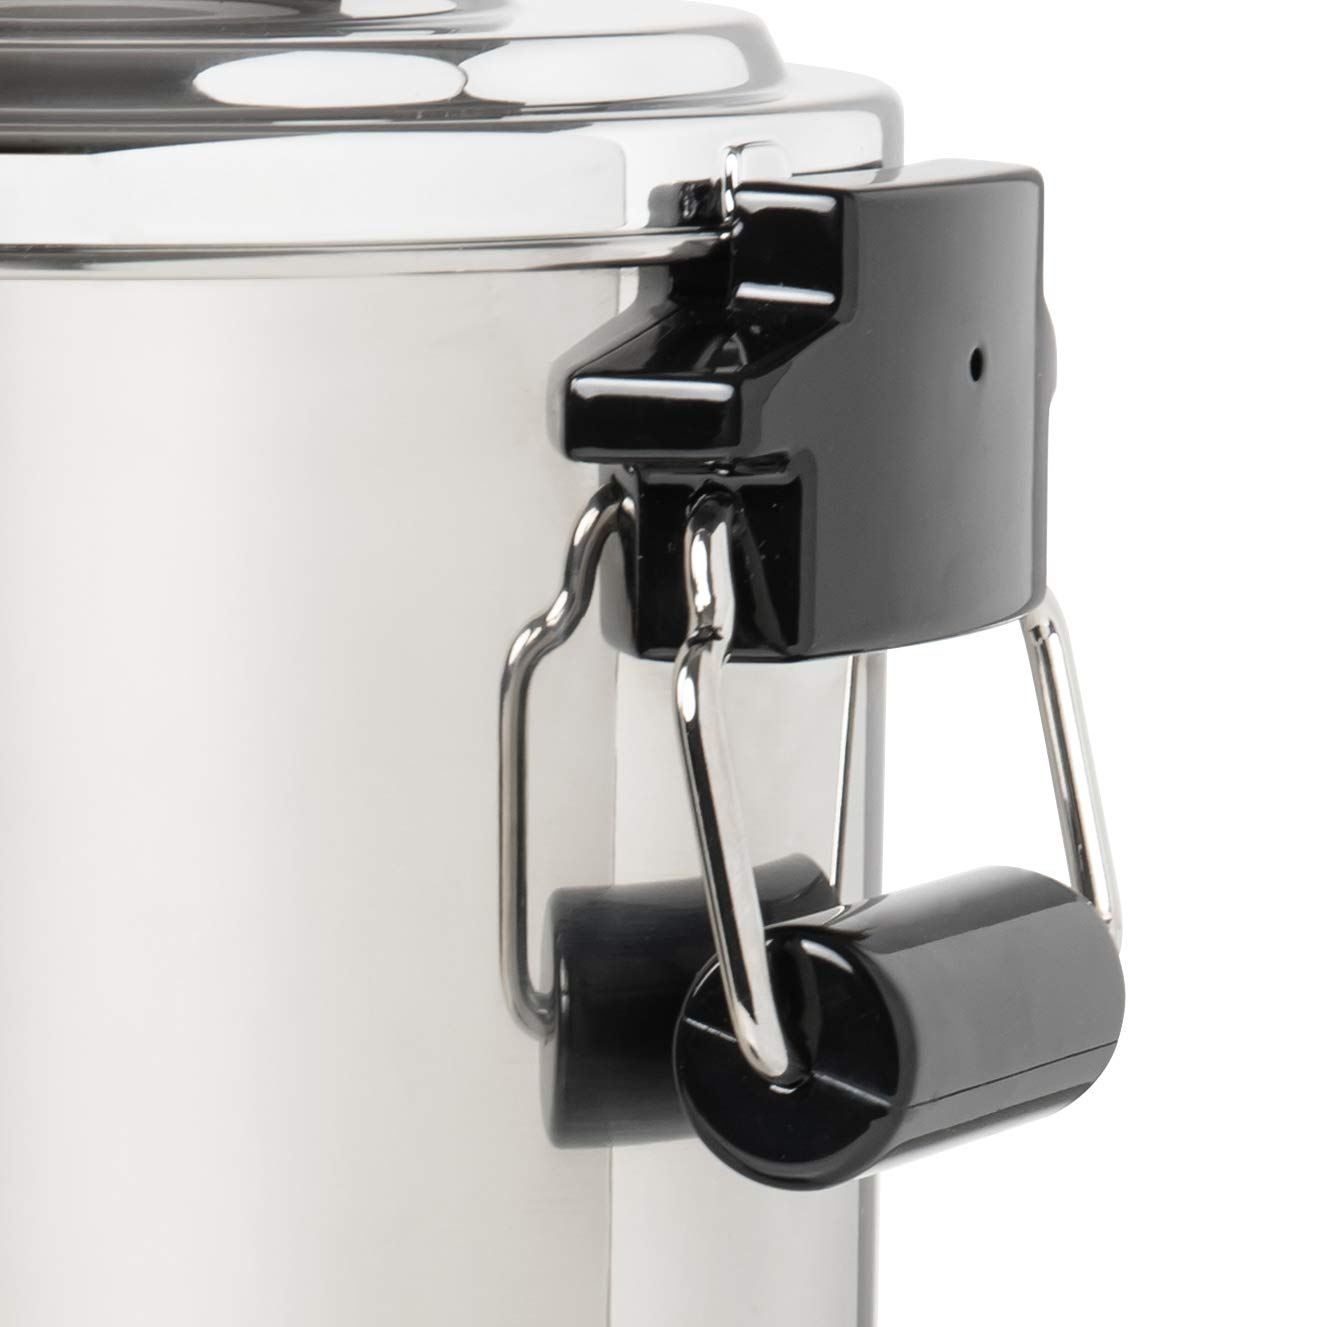 Nostalgia HomeCraft CU30SS Quick-Brewing 1000-Watt Automatic Coffee Urn, 30-Cup, Stainless Steel by Nostalgia (Image #4)